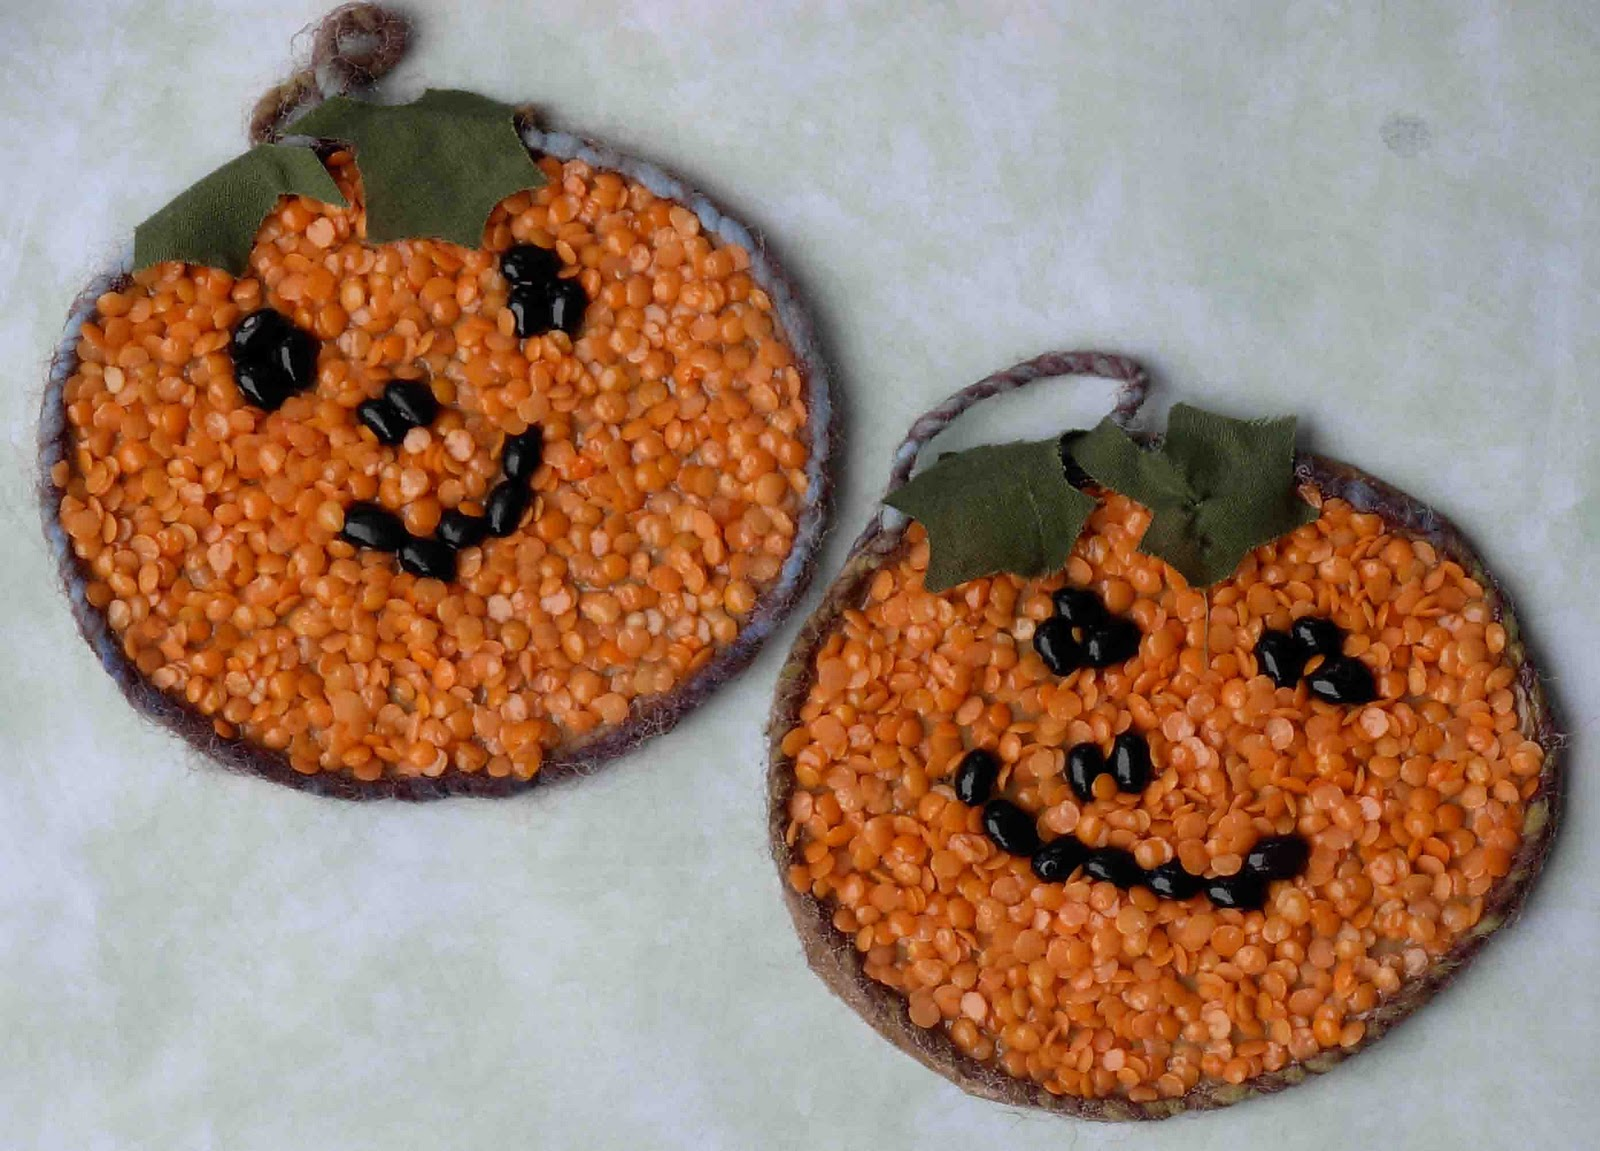 Crack of dawn crafts bean mosaics easy halloween kids craft - Bastelideen herbst kinder ...